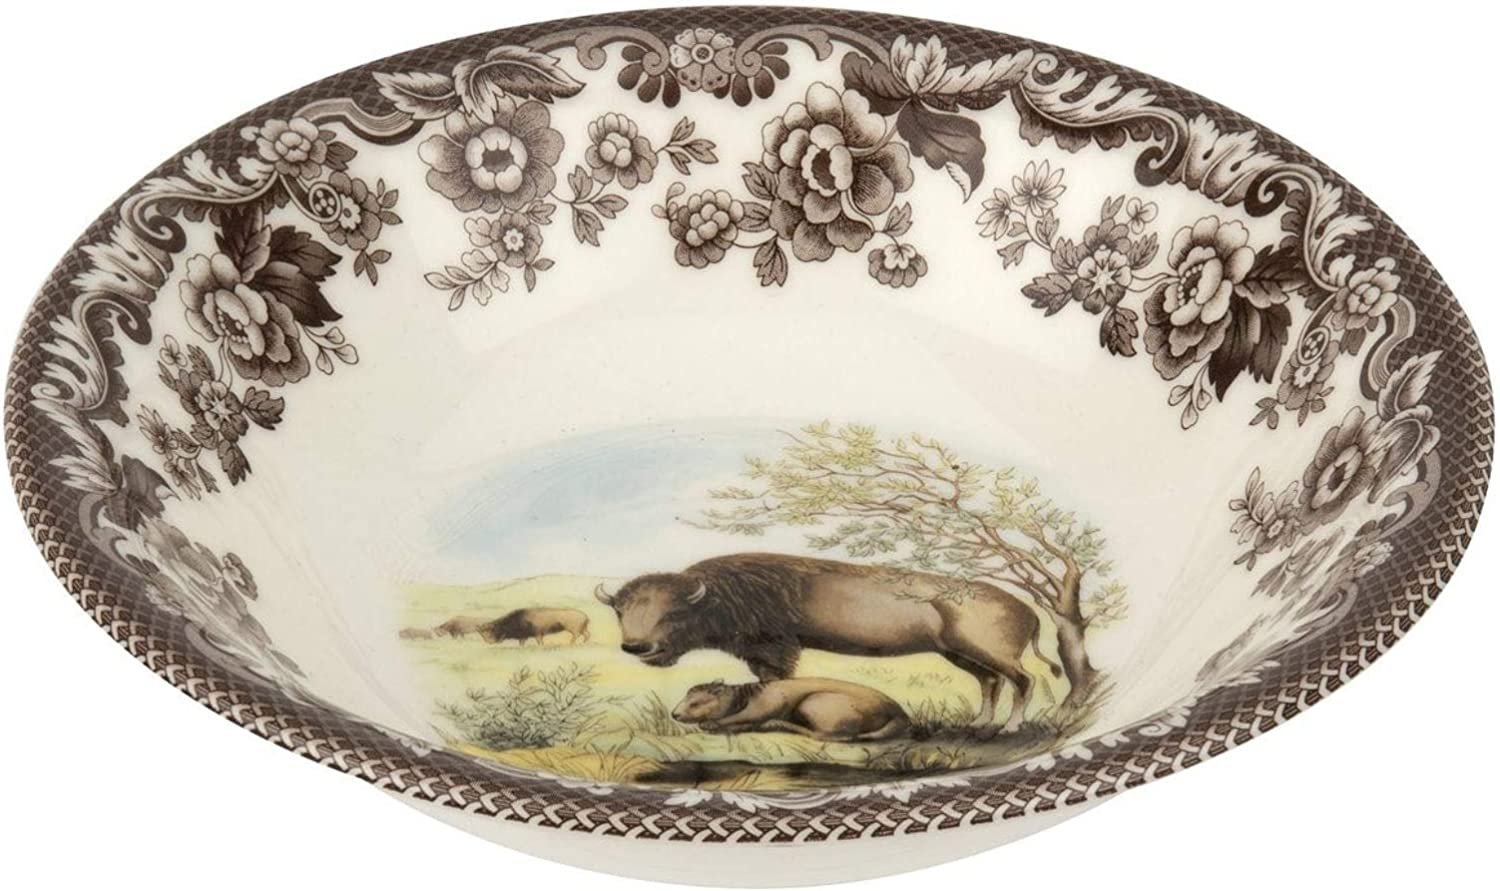 Spode Woodland In a popularity Delamere Ascot Bison Bowl In a popularity Cereal